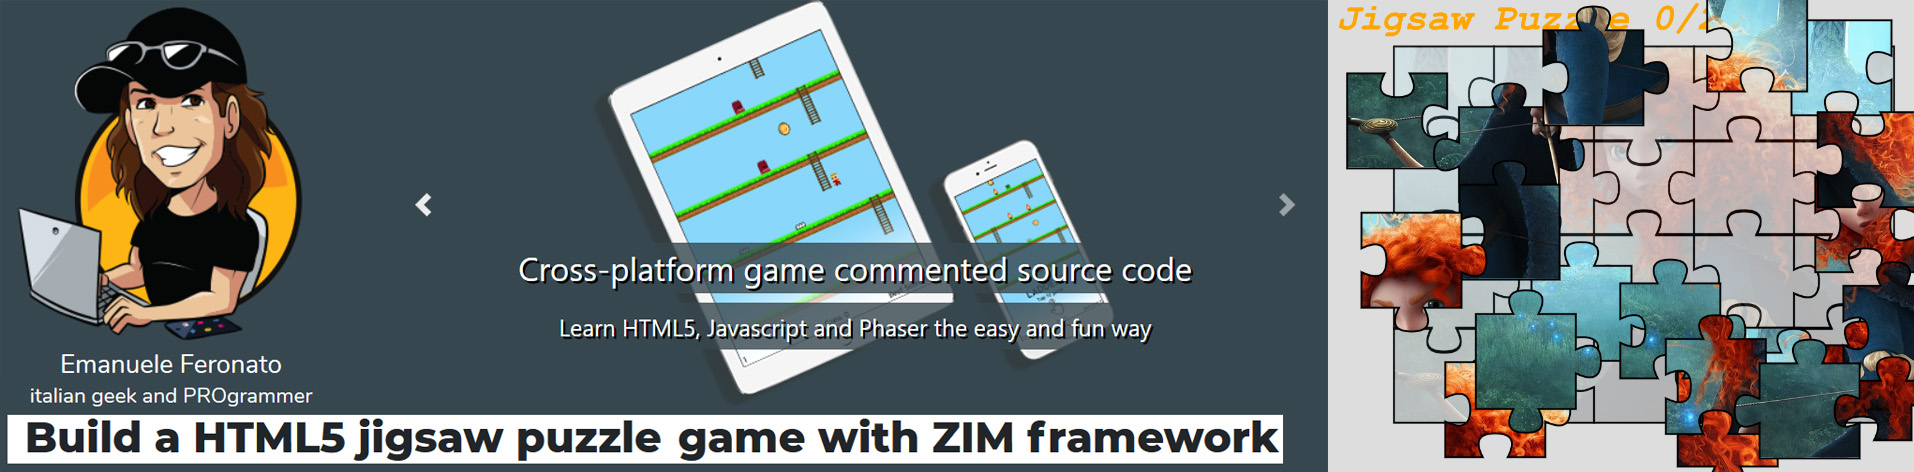 Escape Puzzles - and other teasers with ZIM JavaScript Canvas